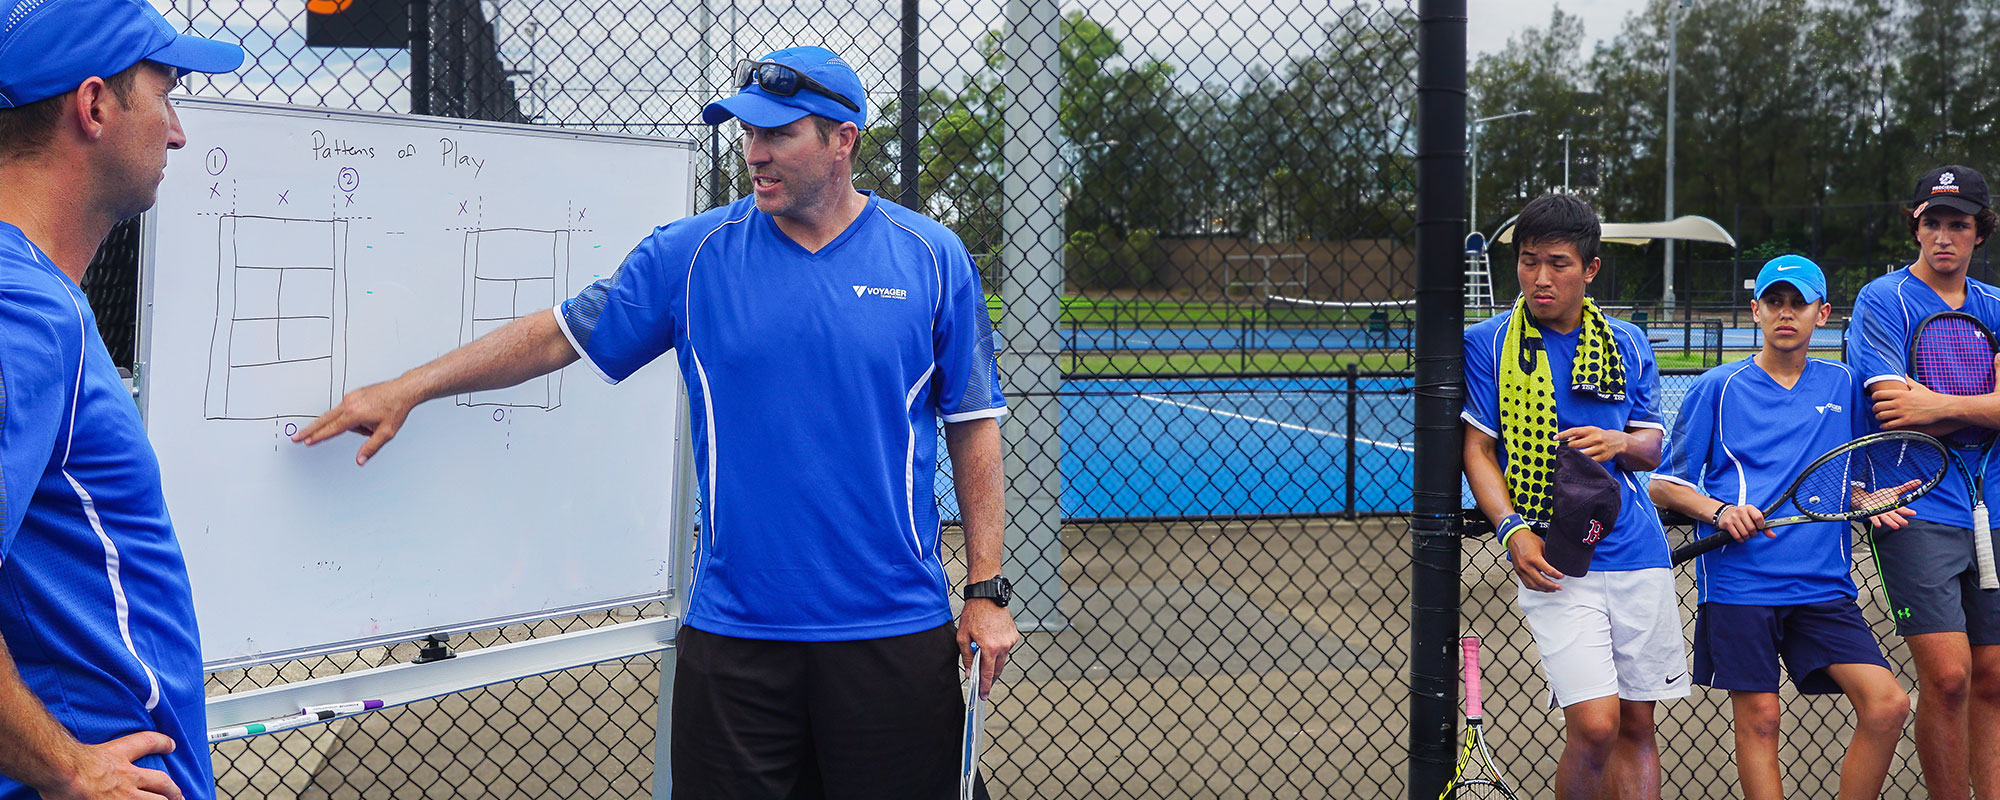 Tennis Instruction at Voyager Tennis Academy